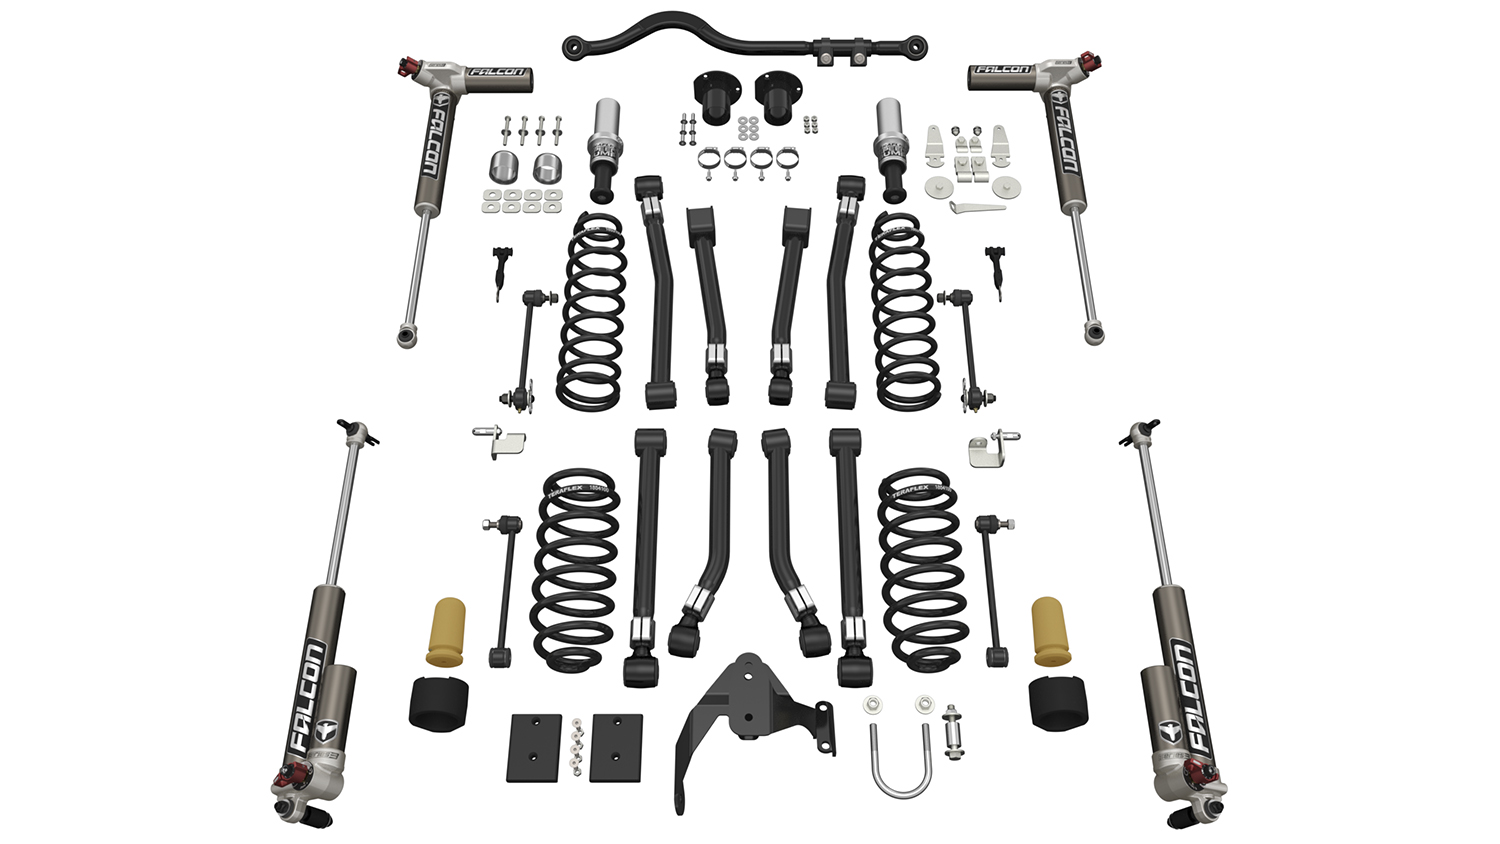 Teraflex Alpine RT3 Short Arm Lift Kit - w/Falcon 3.3 Adjust. Shocks - JK 4dr